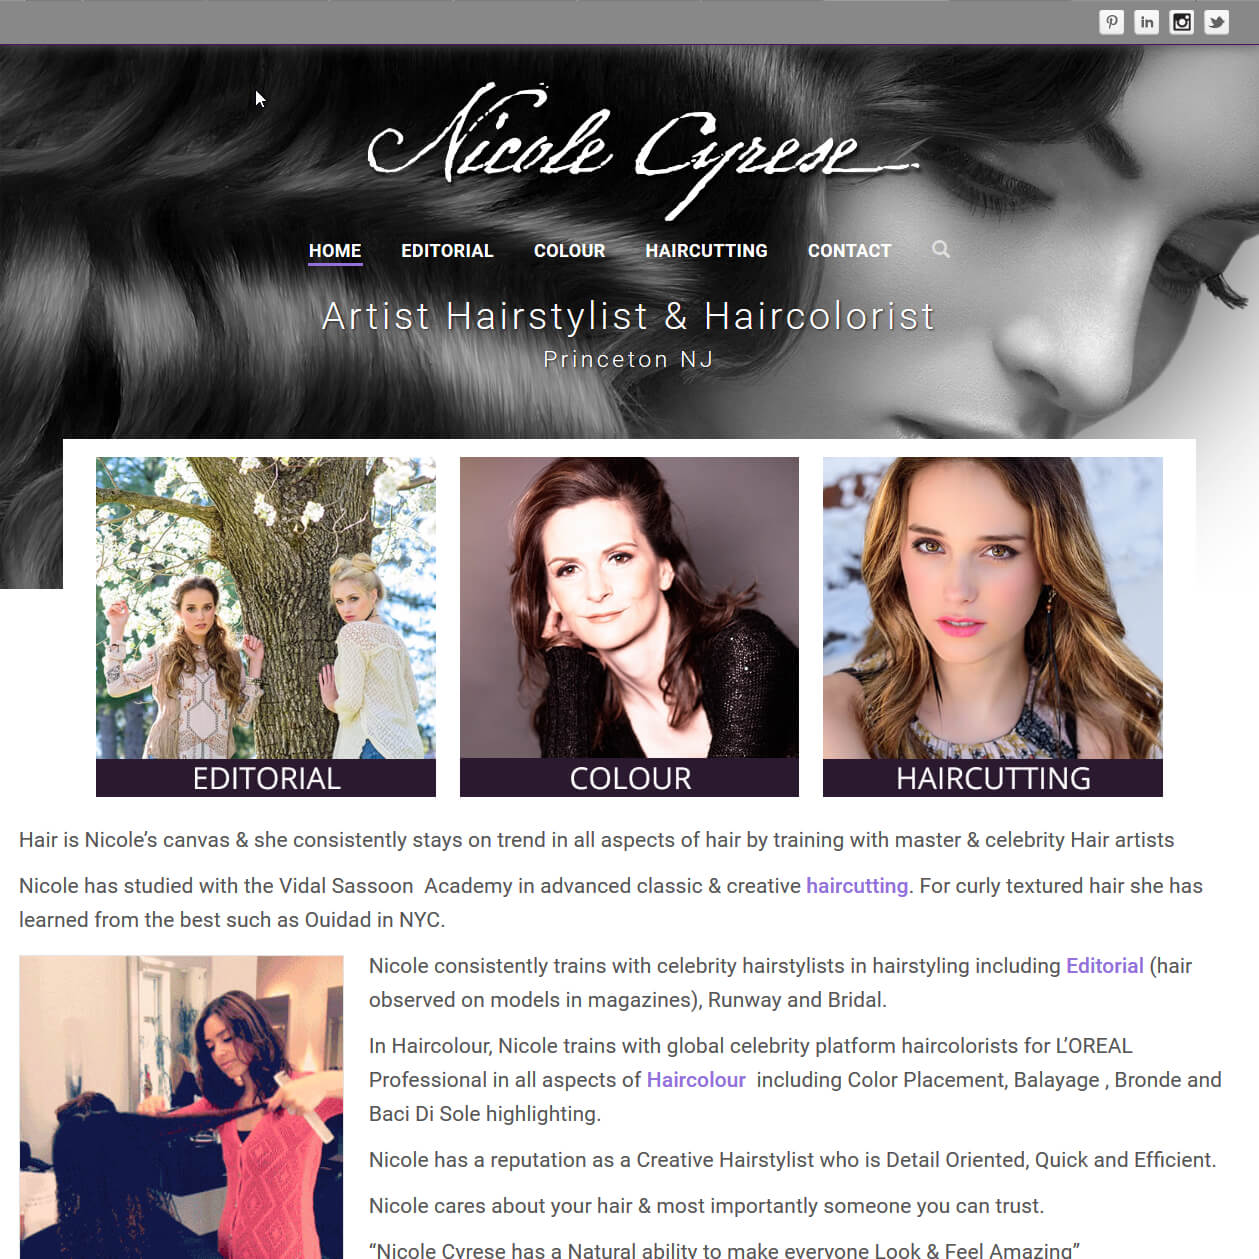 Website Redesign for Nicole Cyrese - Artist Hairstylist & Haircolorist